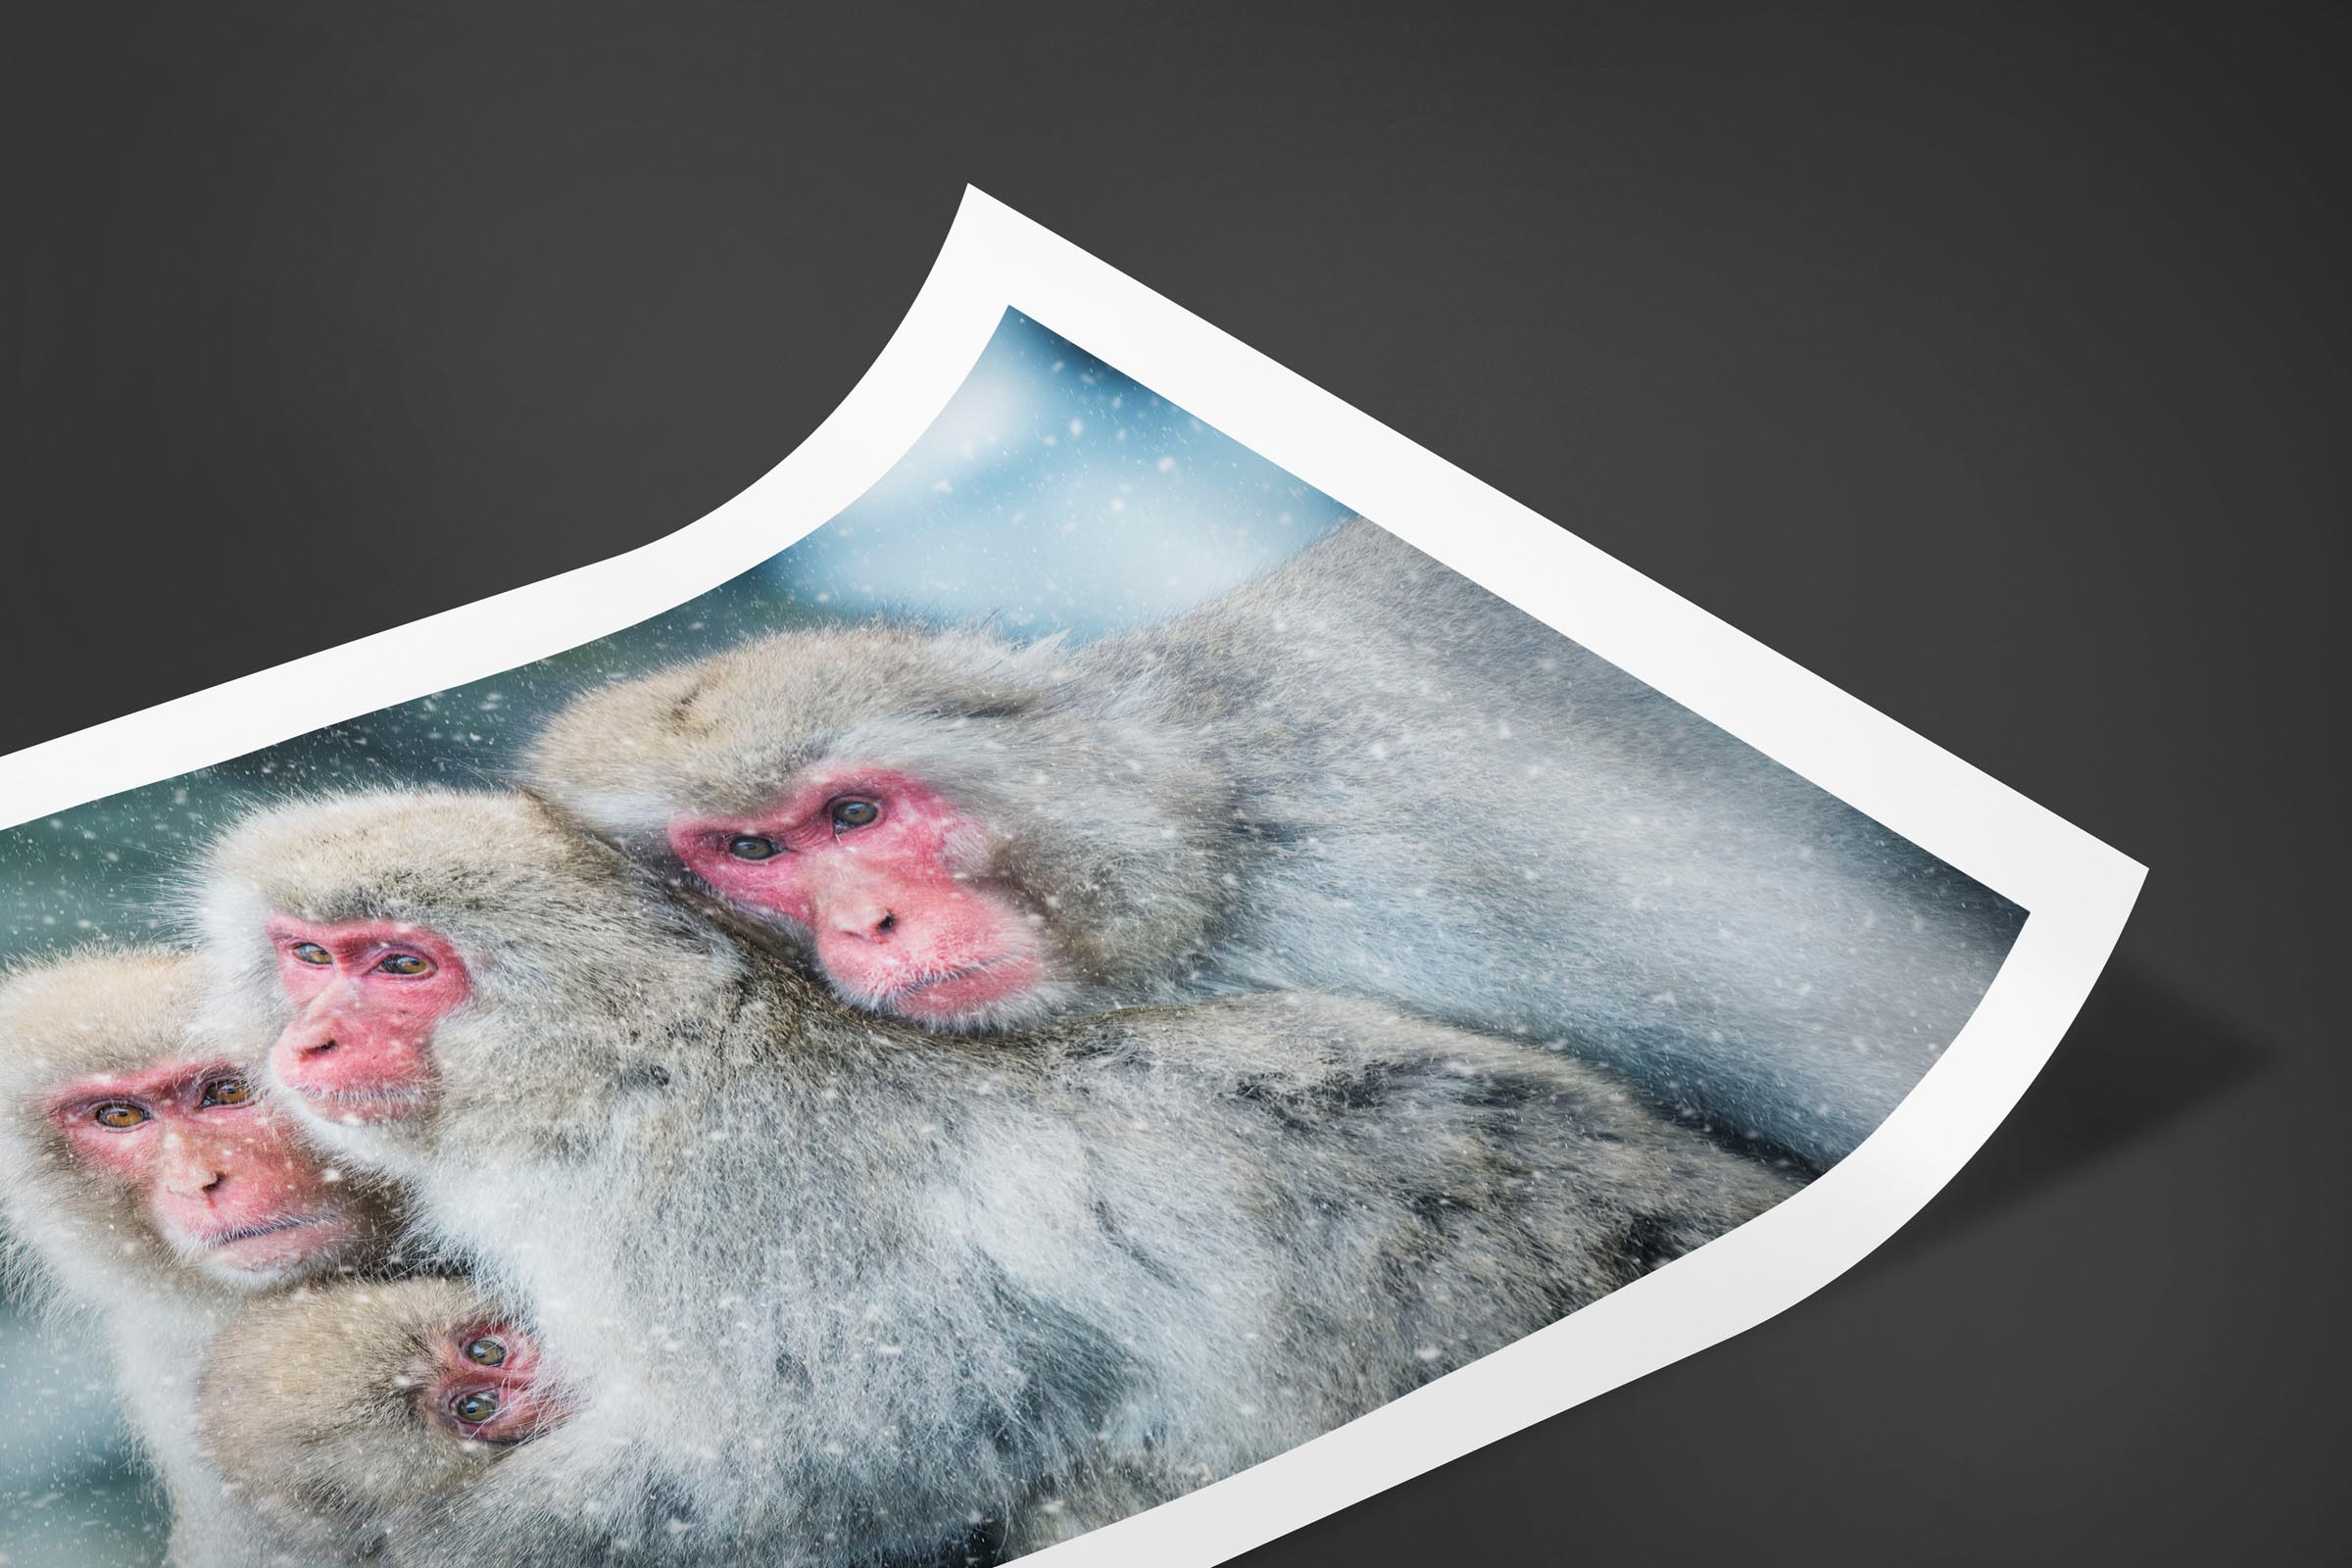 Fine art limited edition print of Snow Monkeys in Nagano, Japan by Brent Goldman Photography